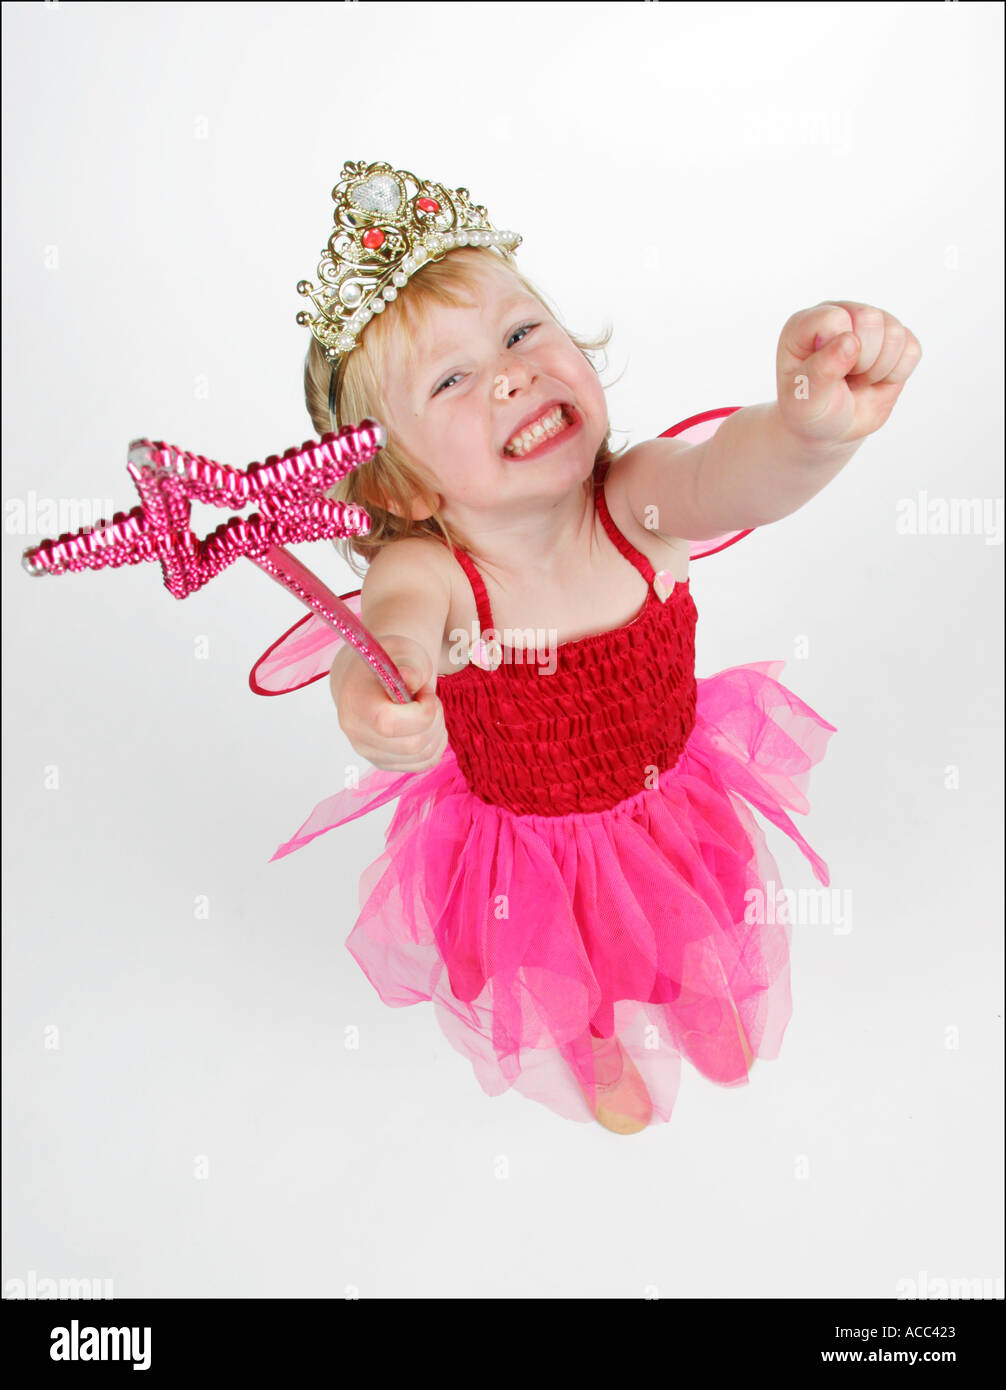 LITTLE GIRL DRESSED AS FAIRY WITH WAND AND CROWN - Stock Image